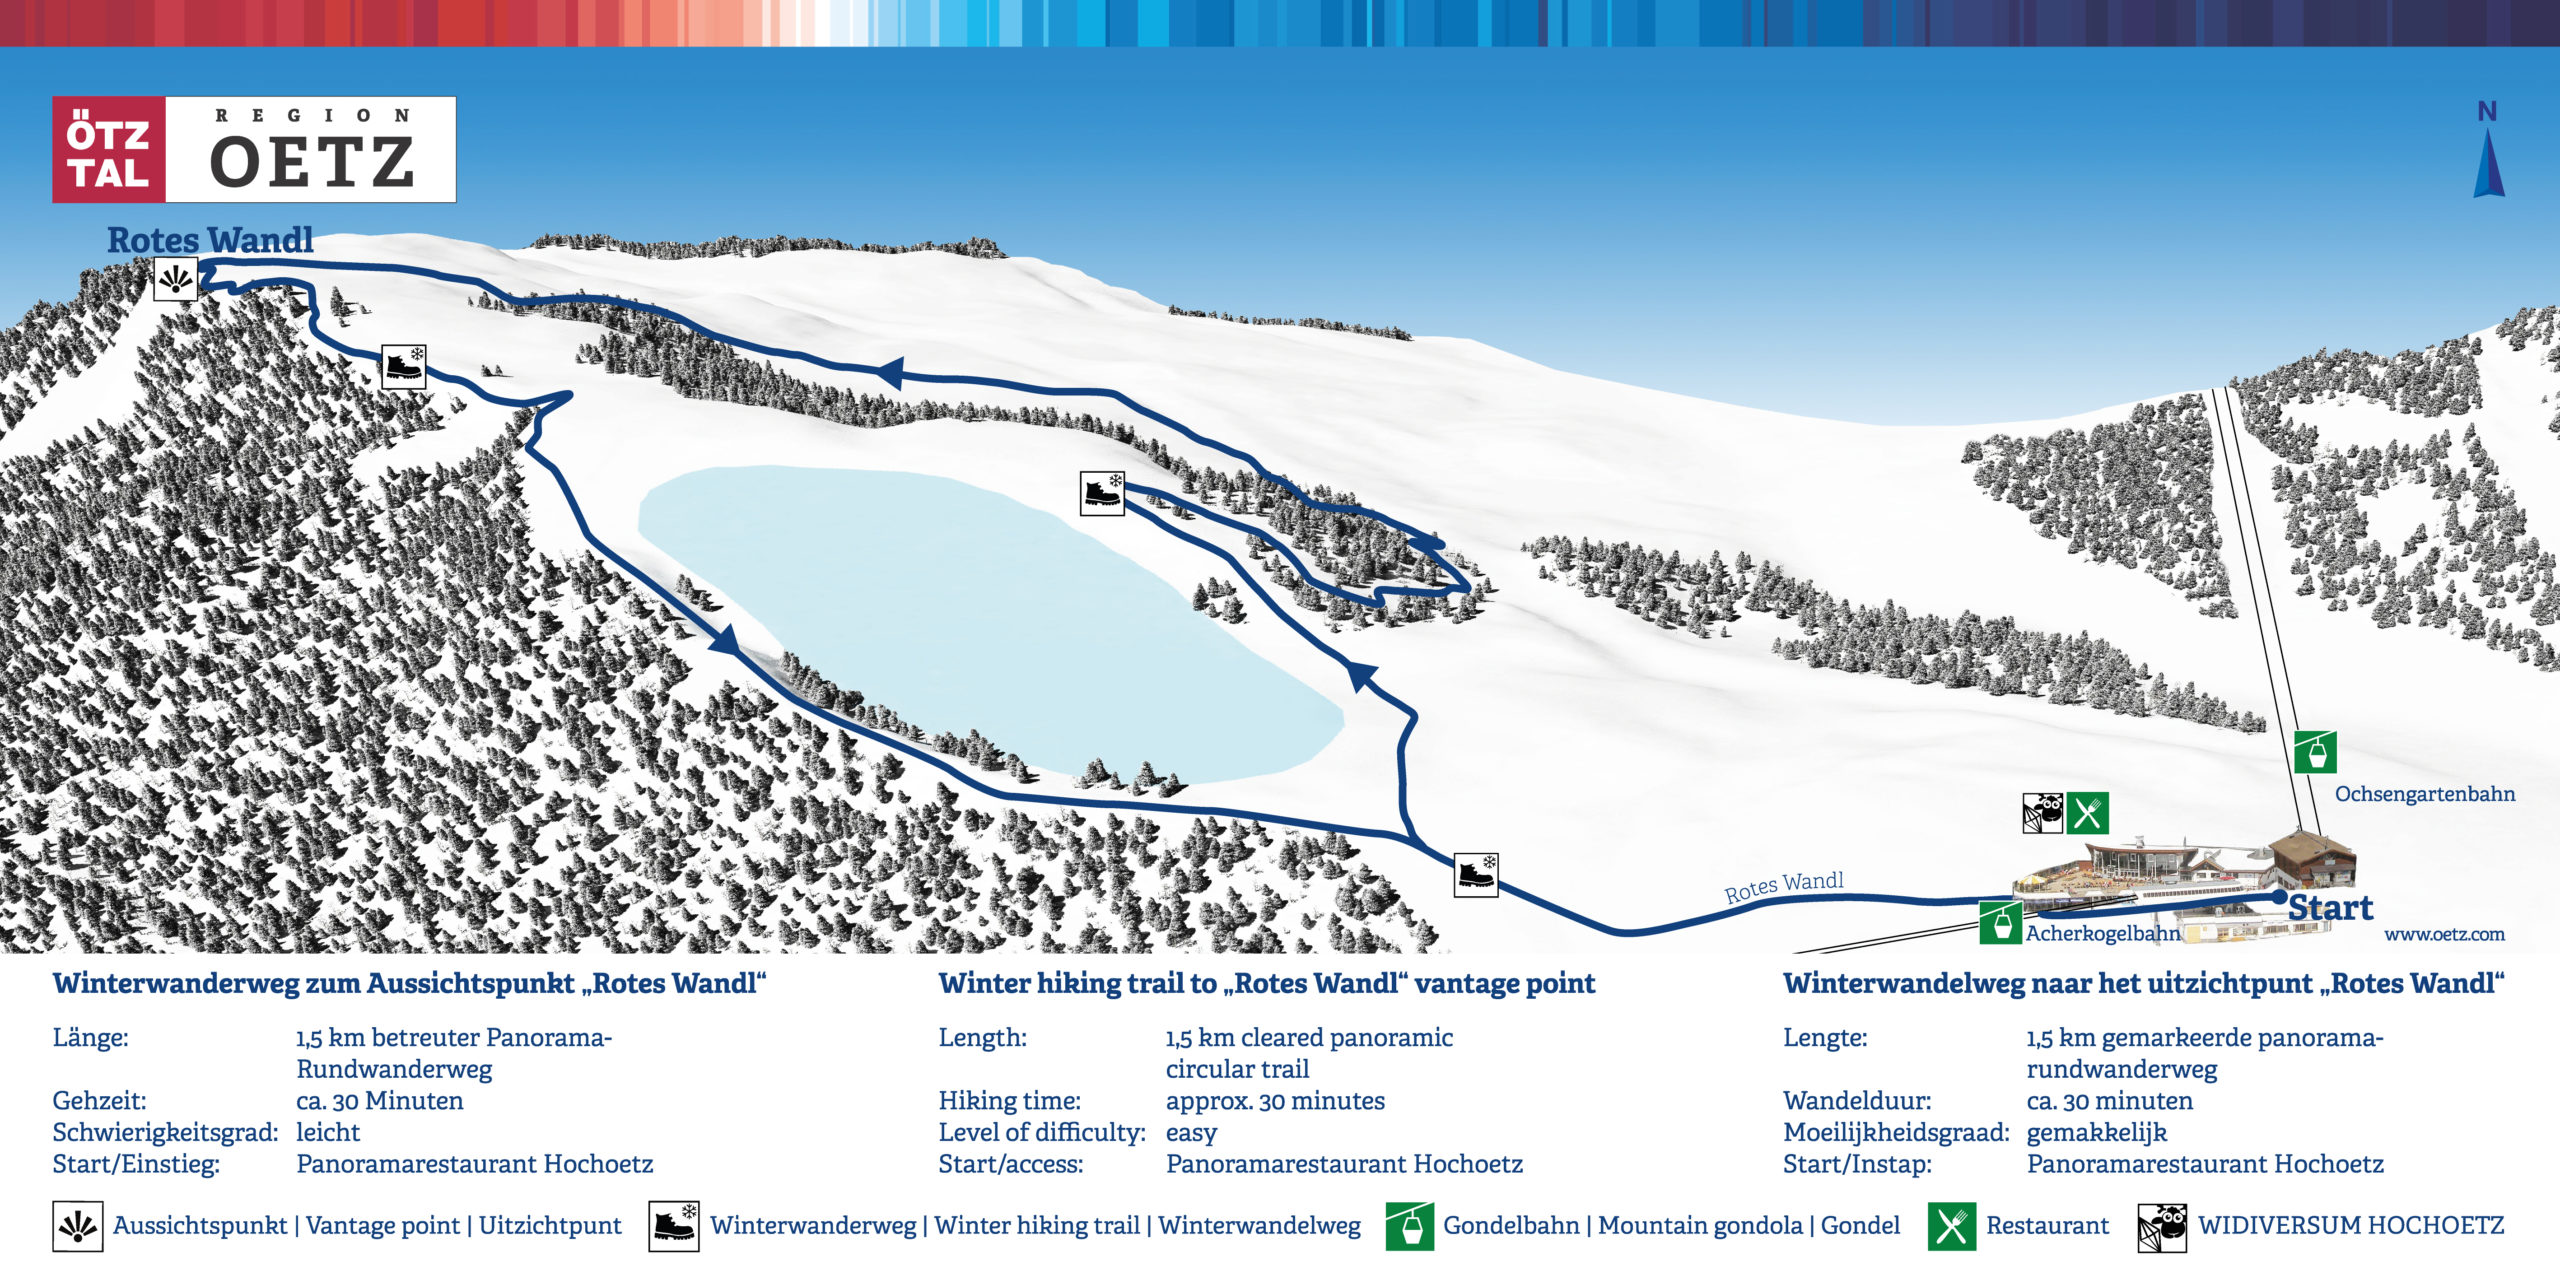 3D Panoramakarte Winter wandern Rotes Wandl Oetztal